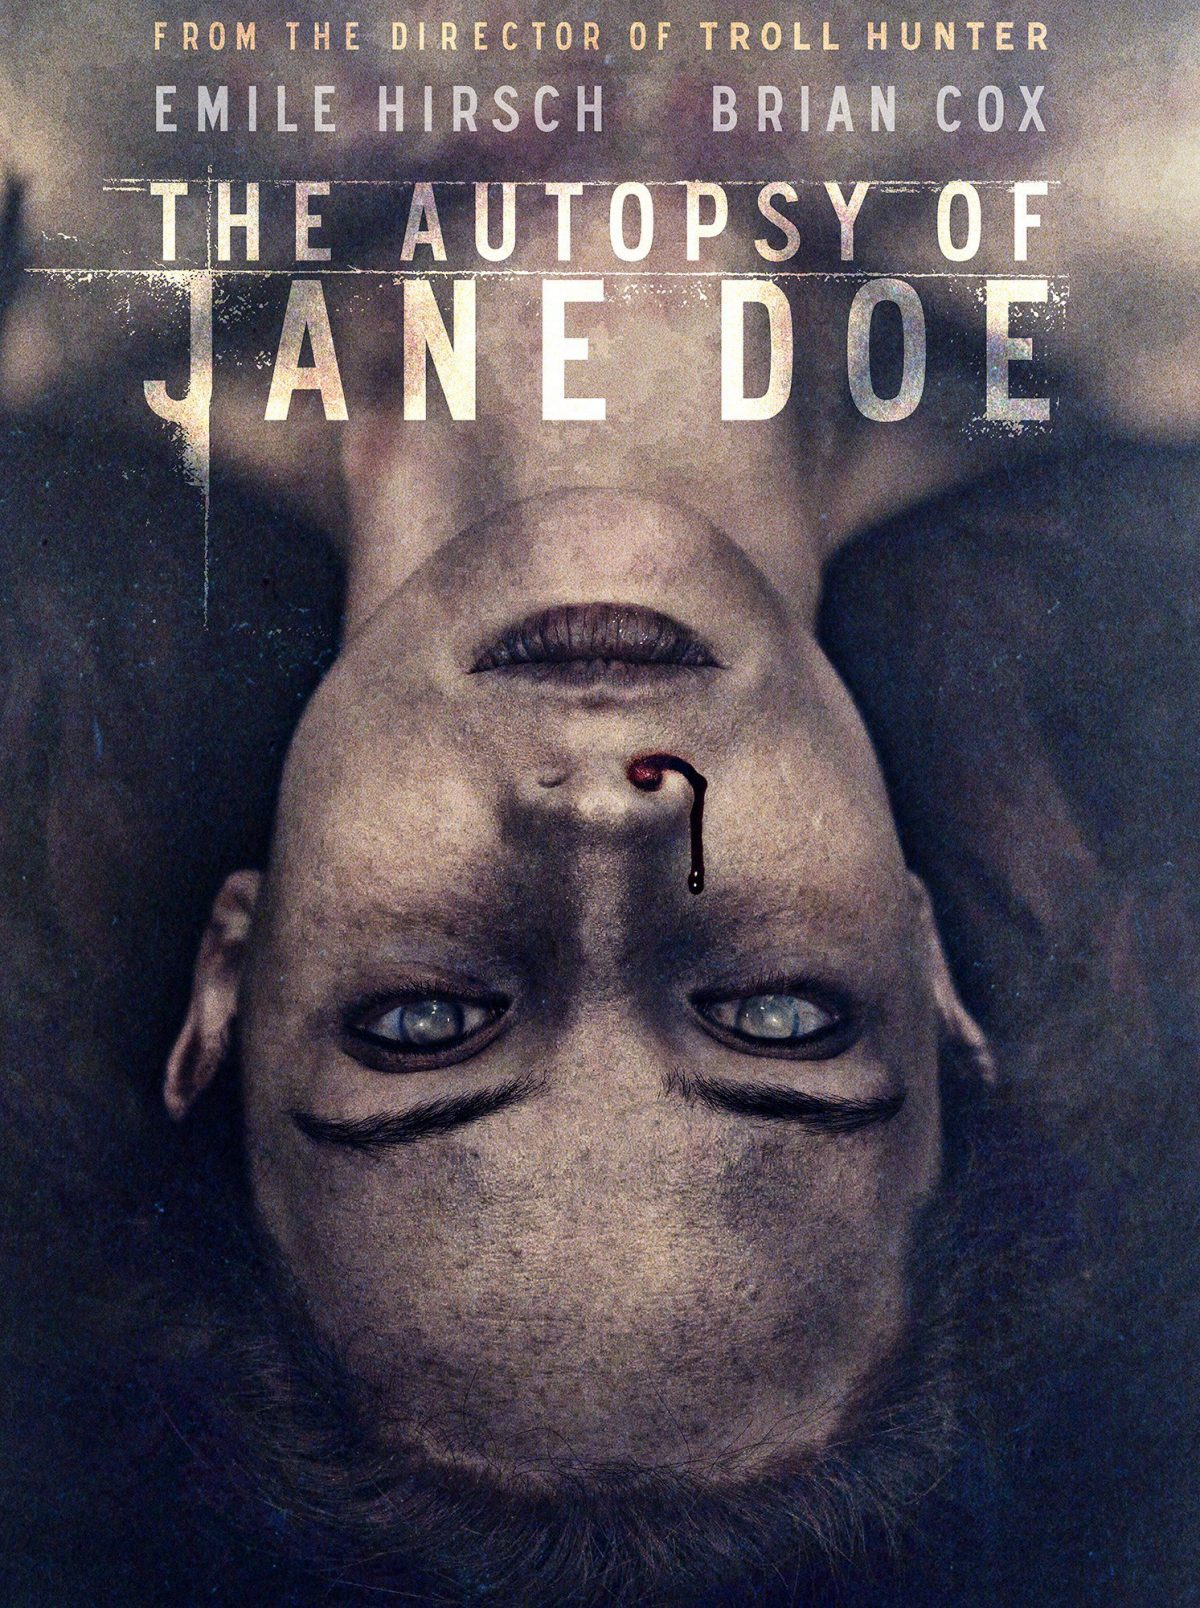 The Autopsy of Jane Doe - Review